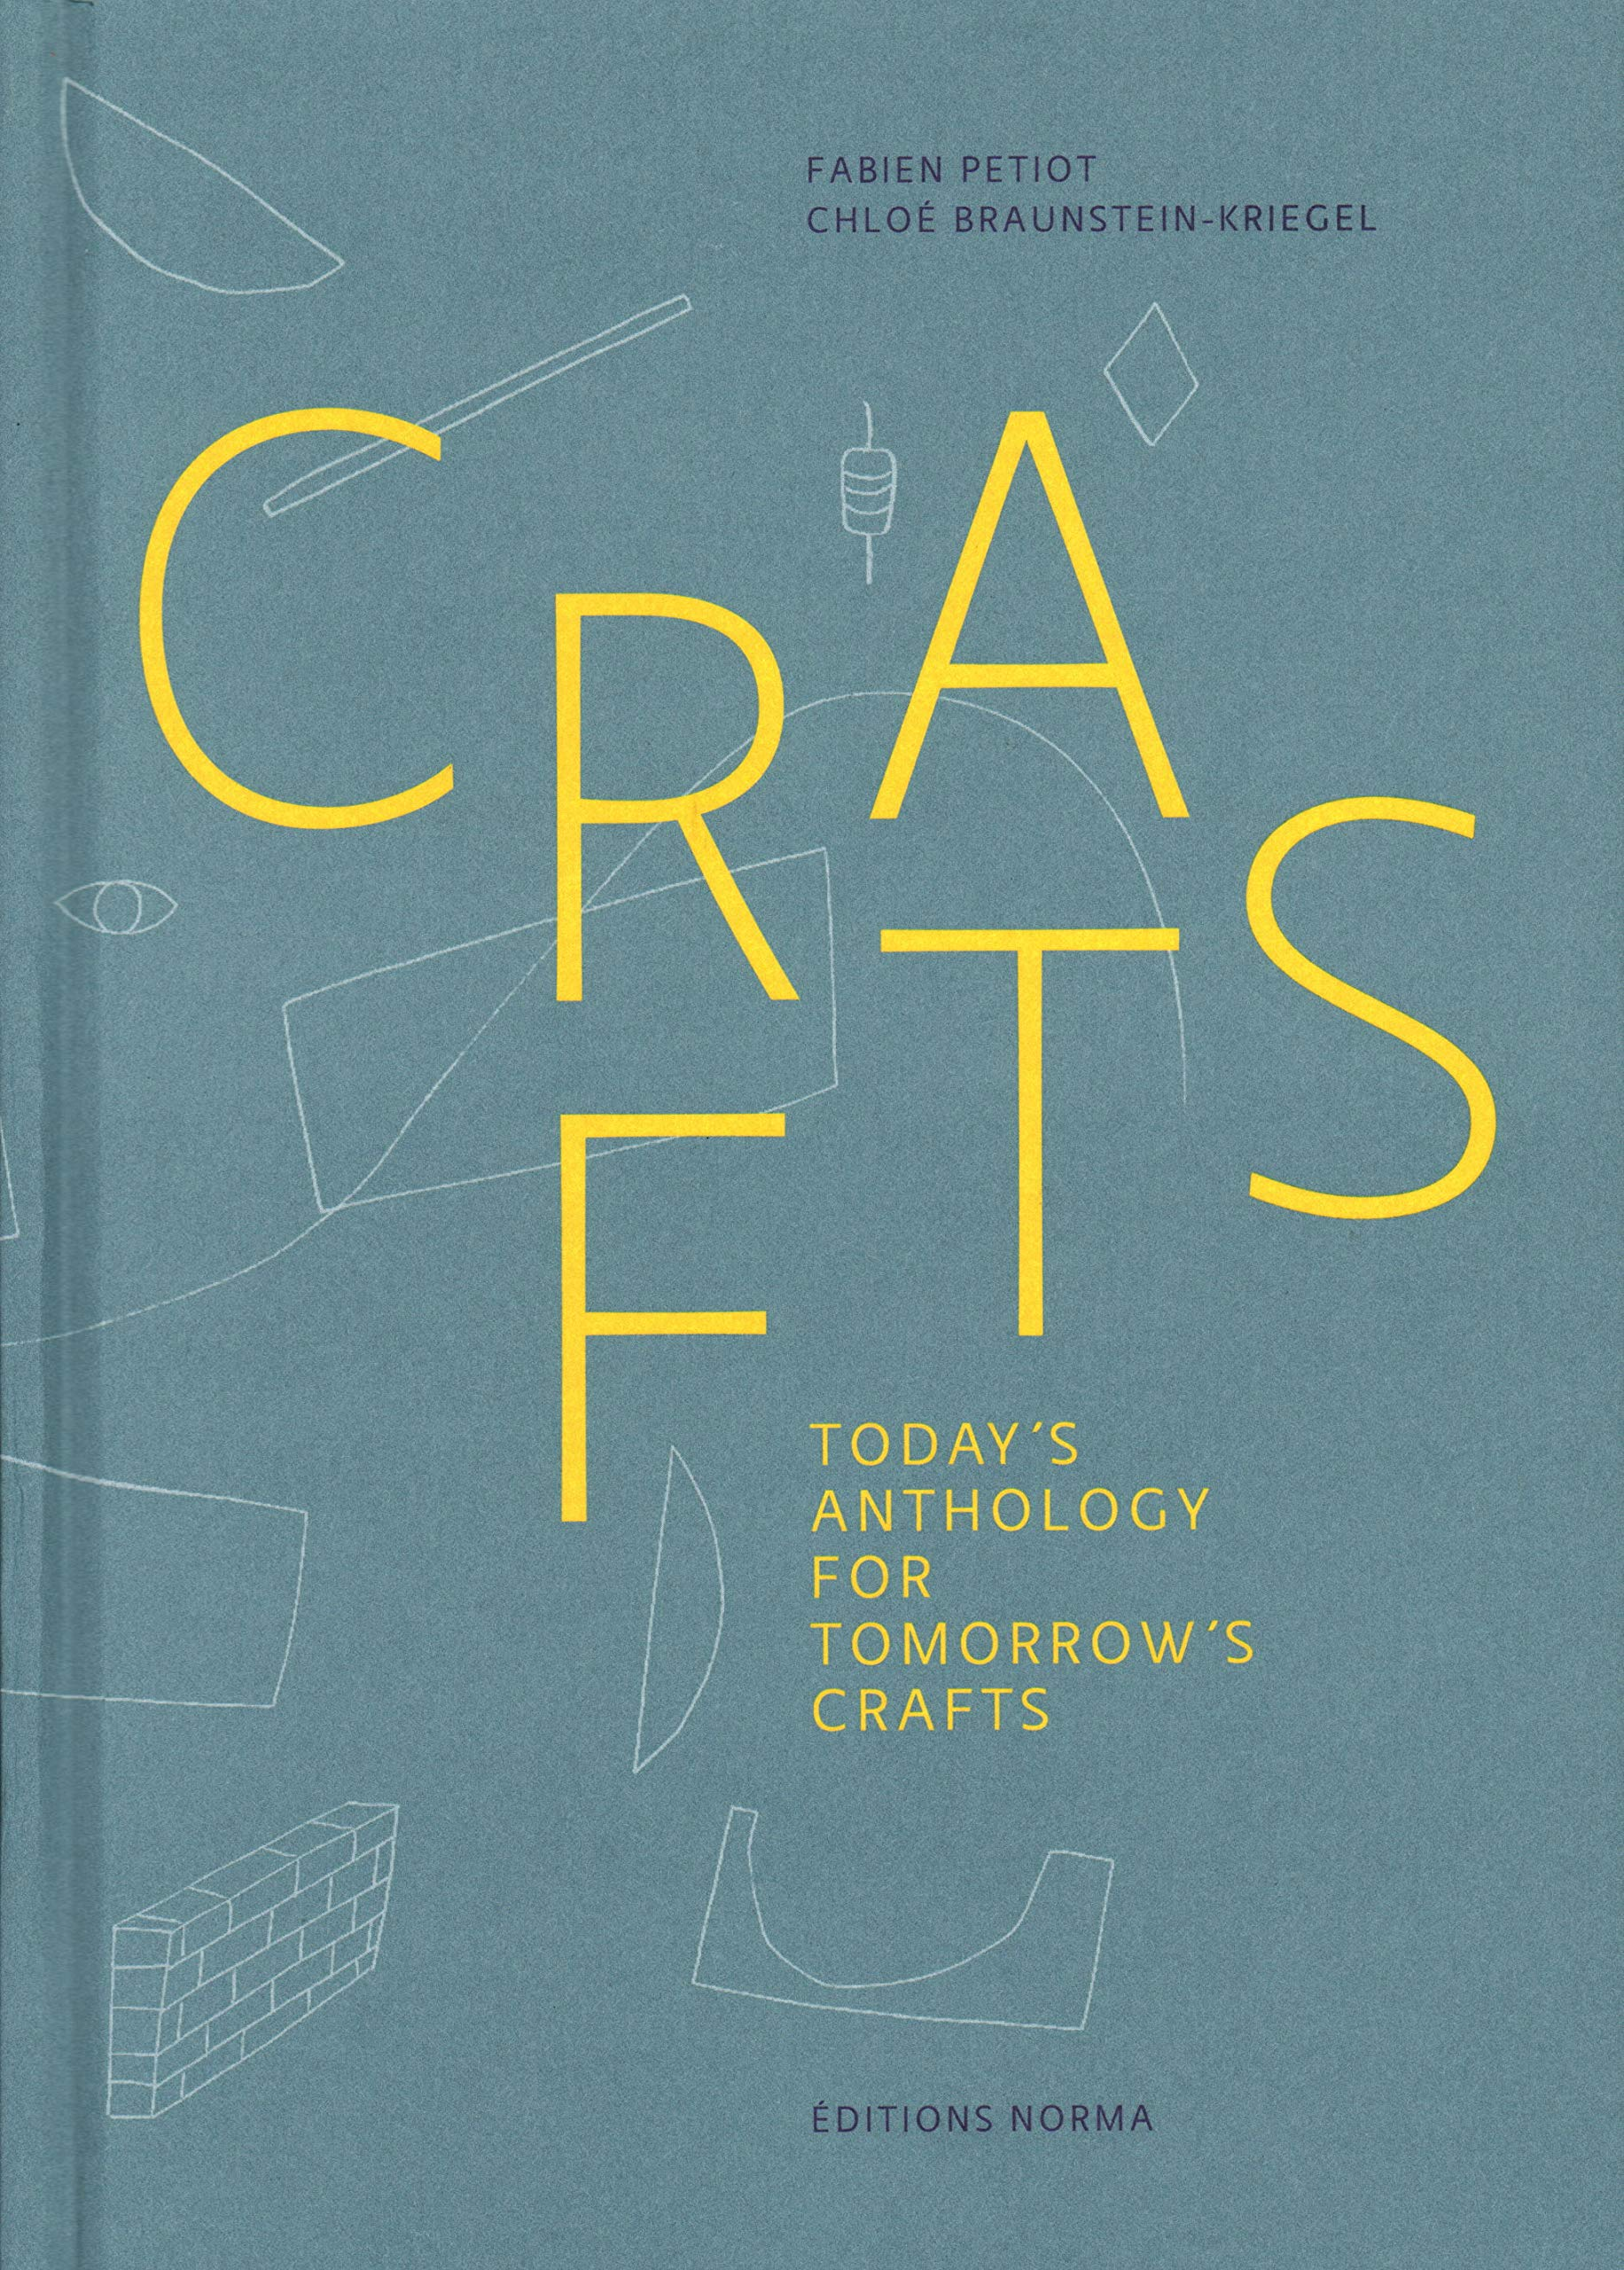 Crafts: Today's Anthology for Tomorrow's Crafts